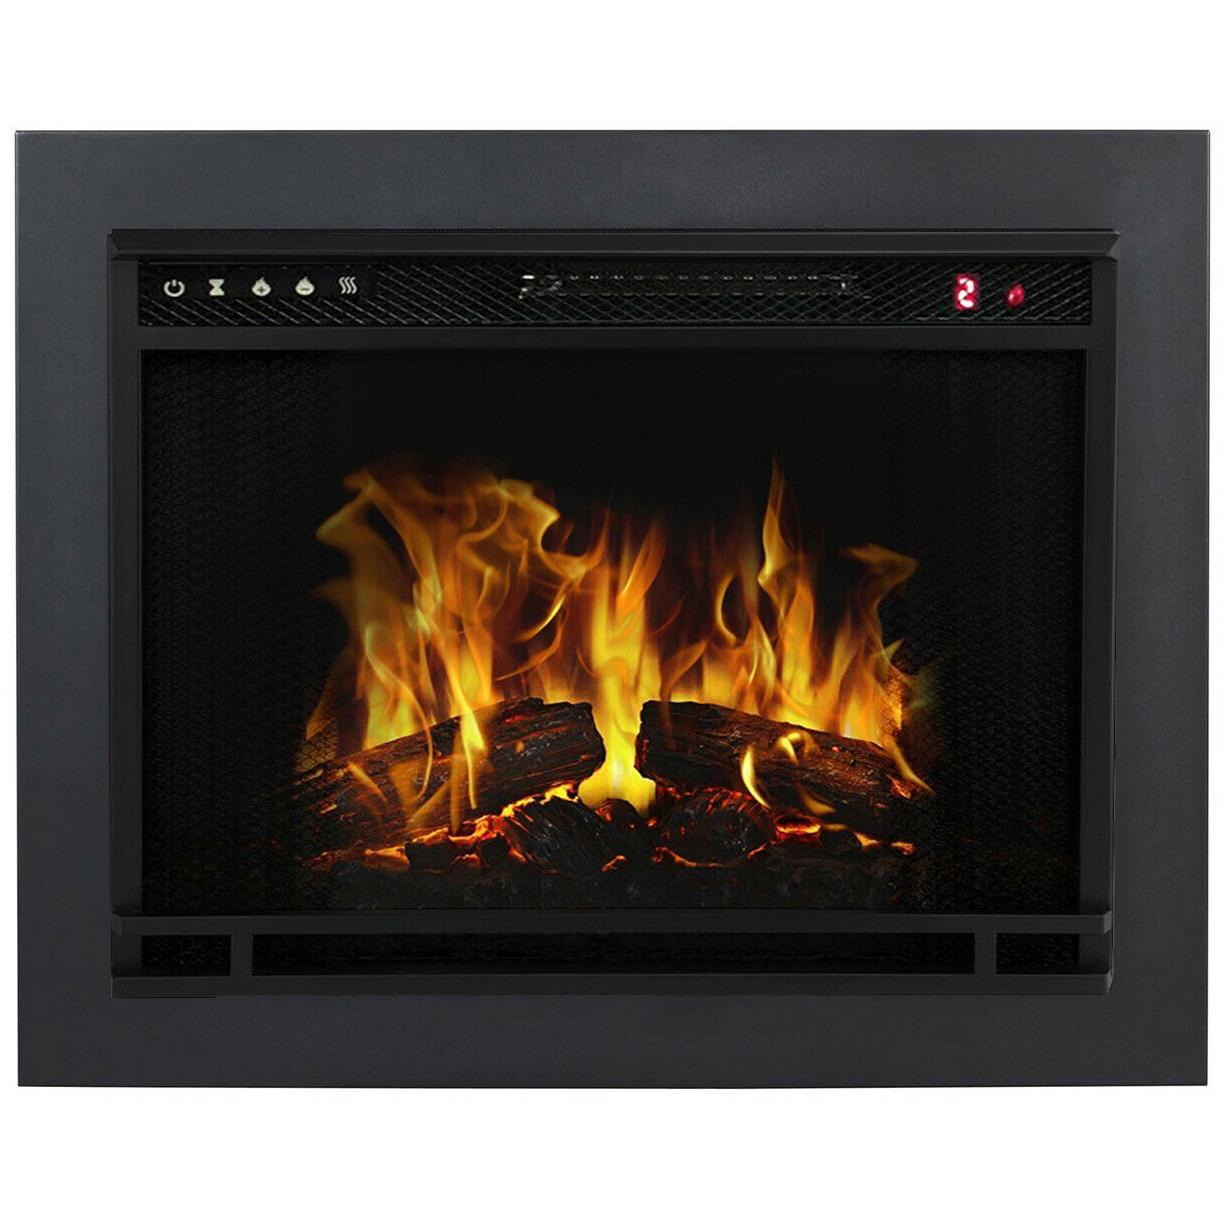 23 inch flat ventless heater electric fireplace